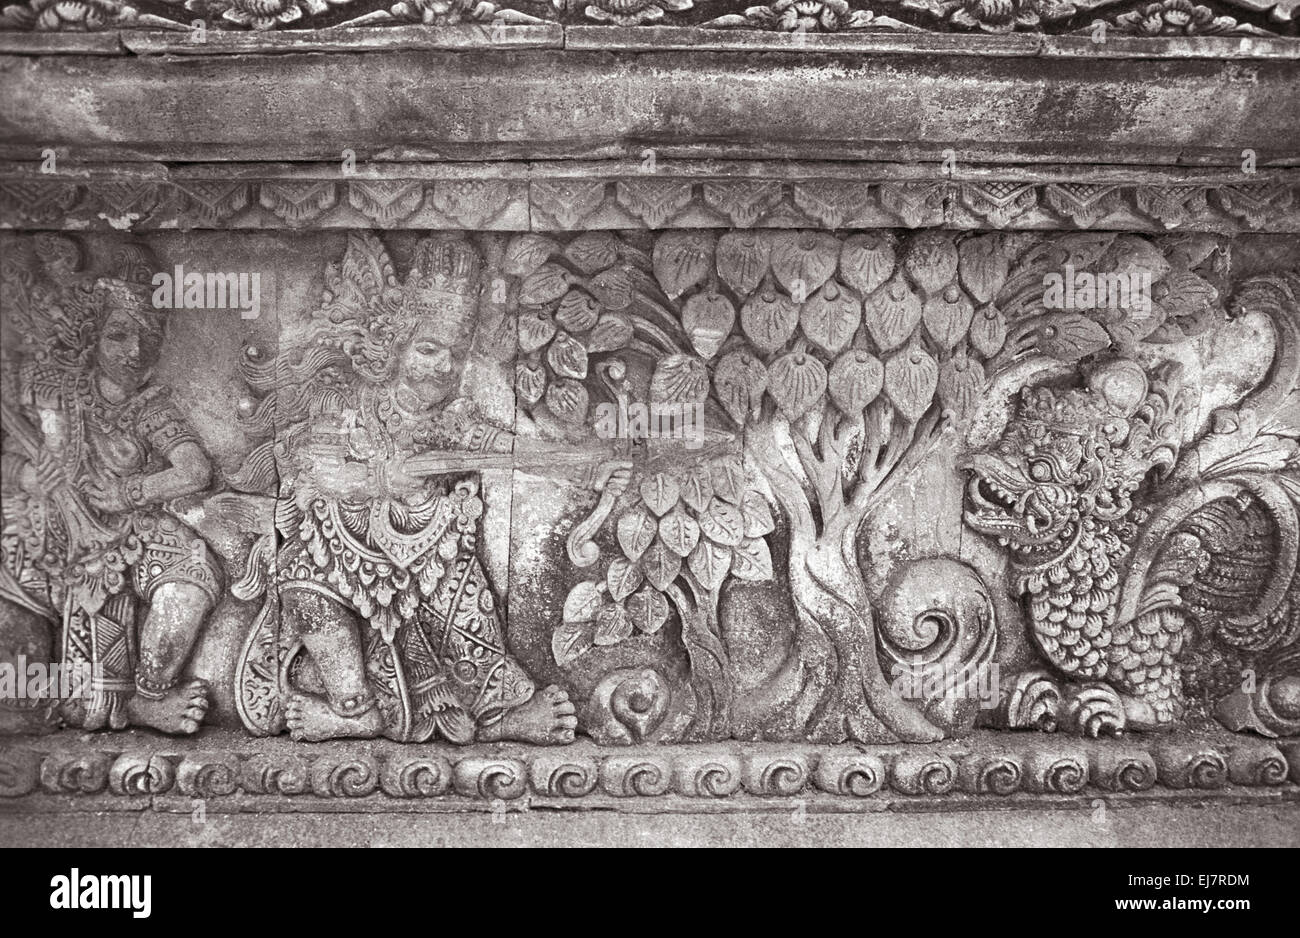 Singaraja temple, King accompanied with his attendant- killing a syncretic animal in the forest. Bali Indonesia - Stock Image